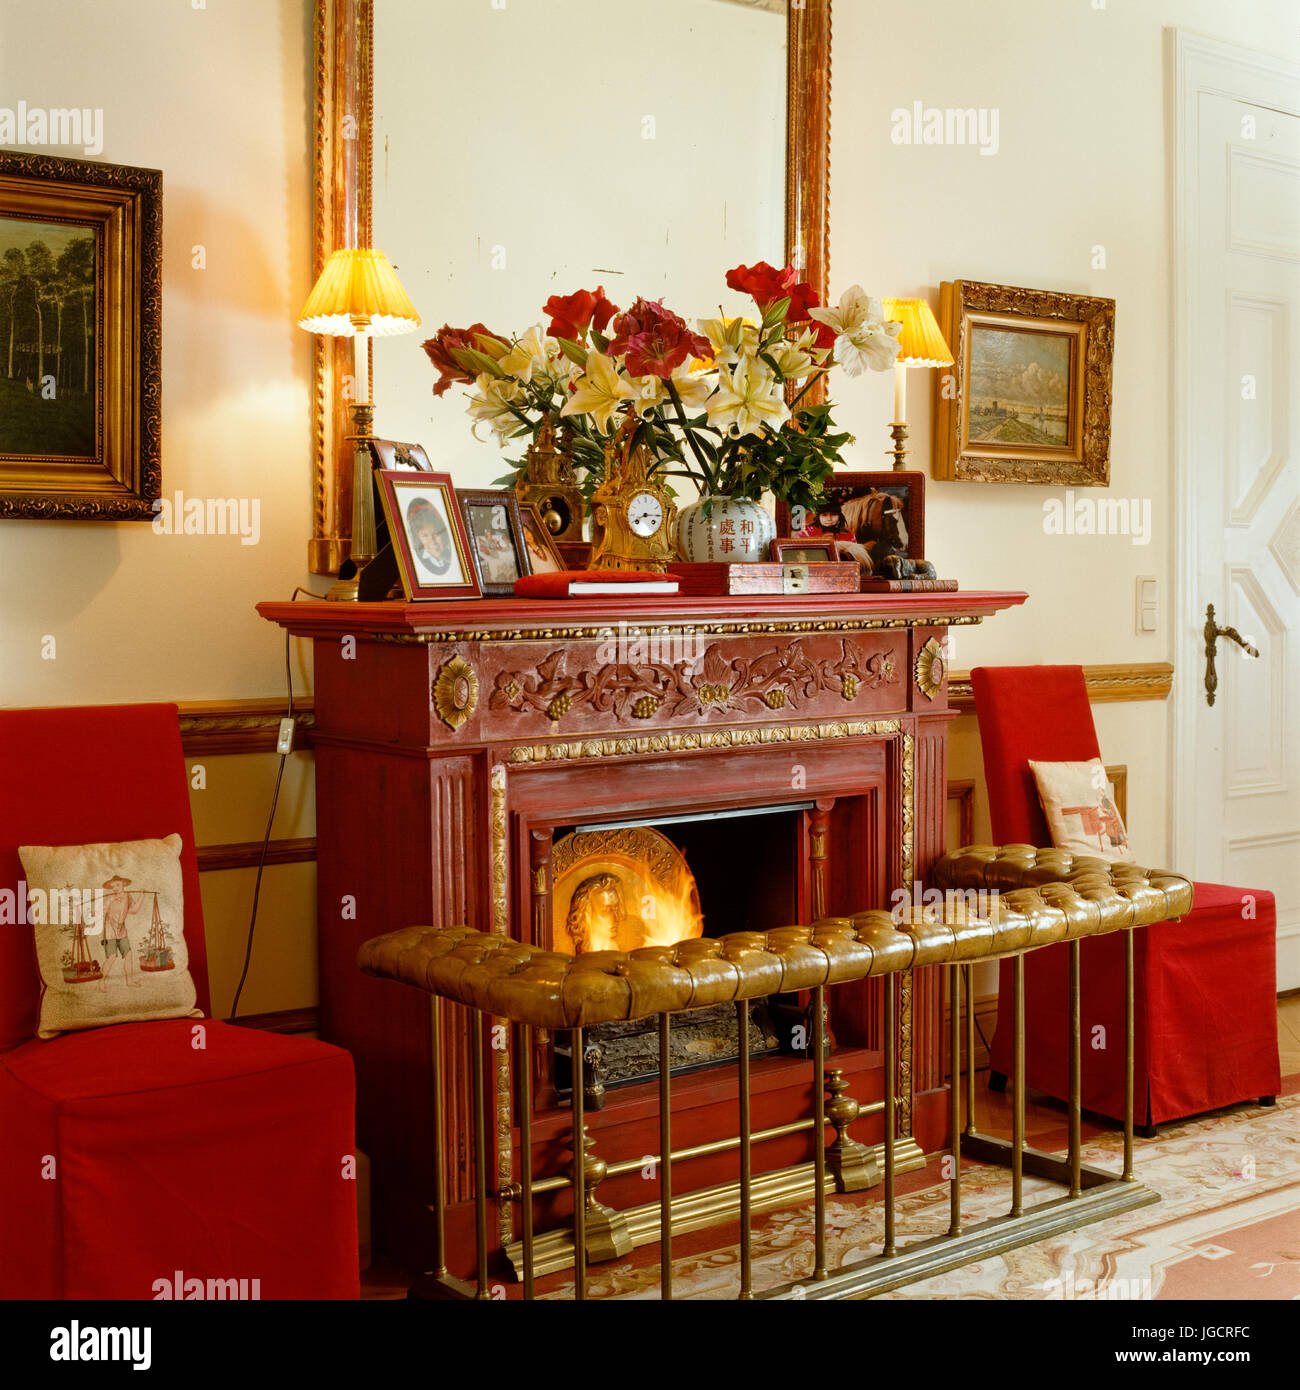 Lit oriental fireplace Stock Photo: 147799328   Alamy